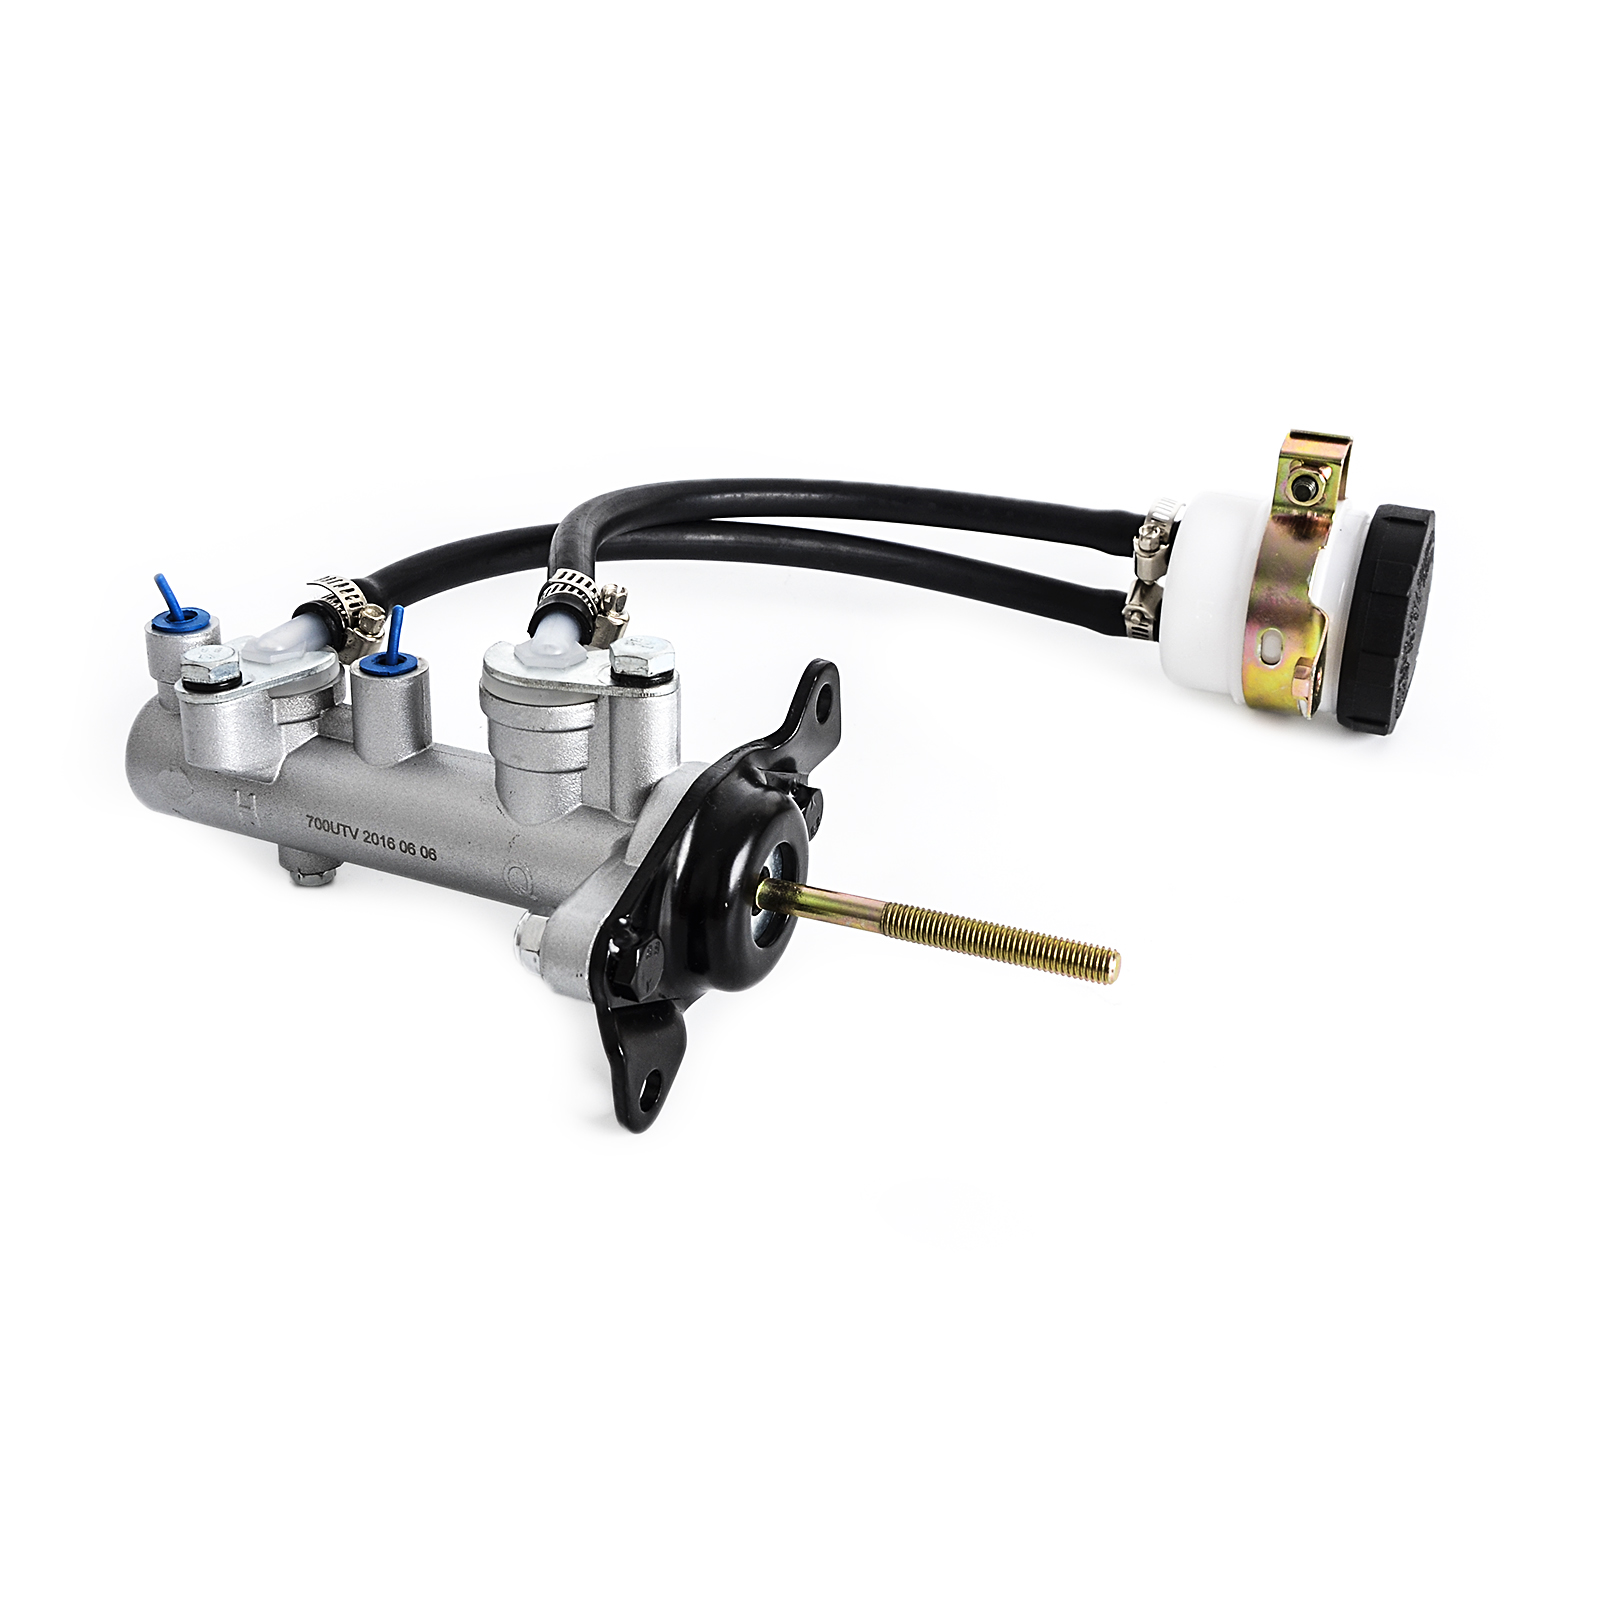 Motorcycle Brake Master Cylinder Pump For HiSUN 400 500 700 <font><b>800</b></font> <font><b>UTV</b></font> MASSIMO SUPERMACH Brake Master Cylinder image